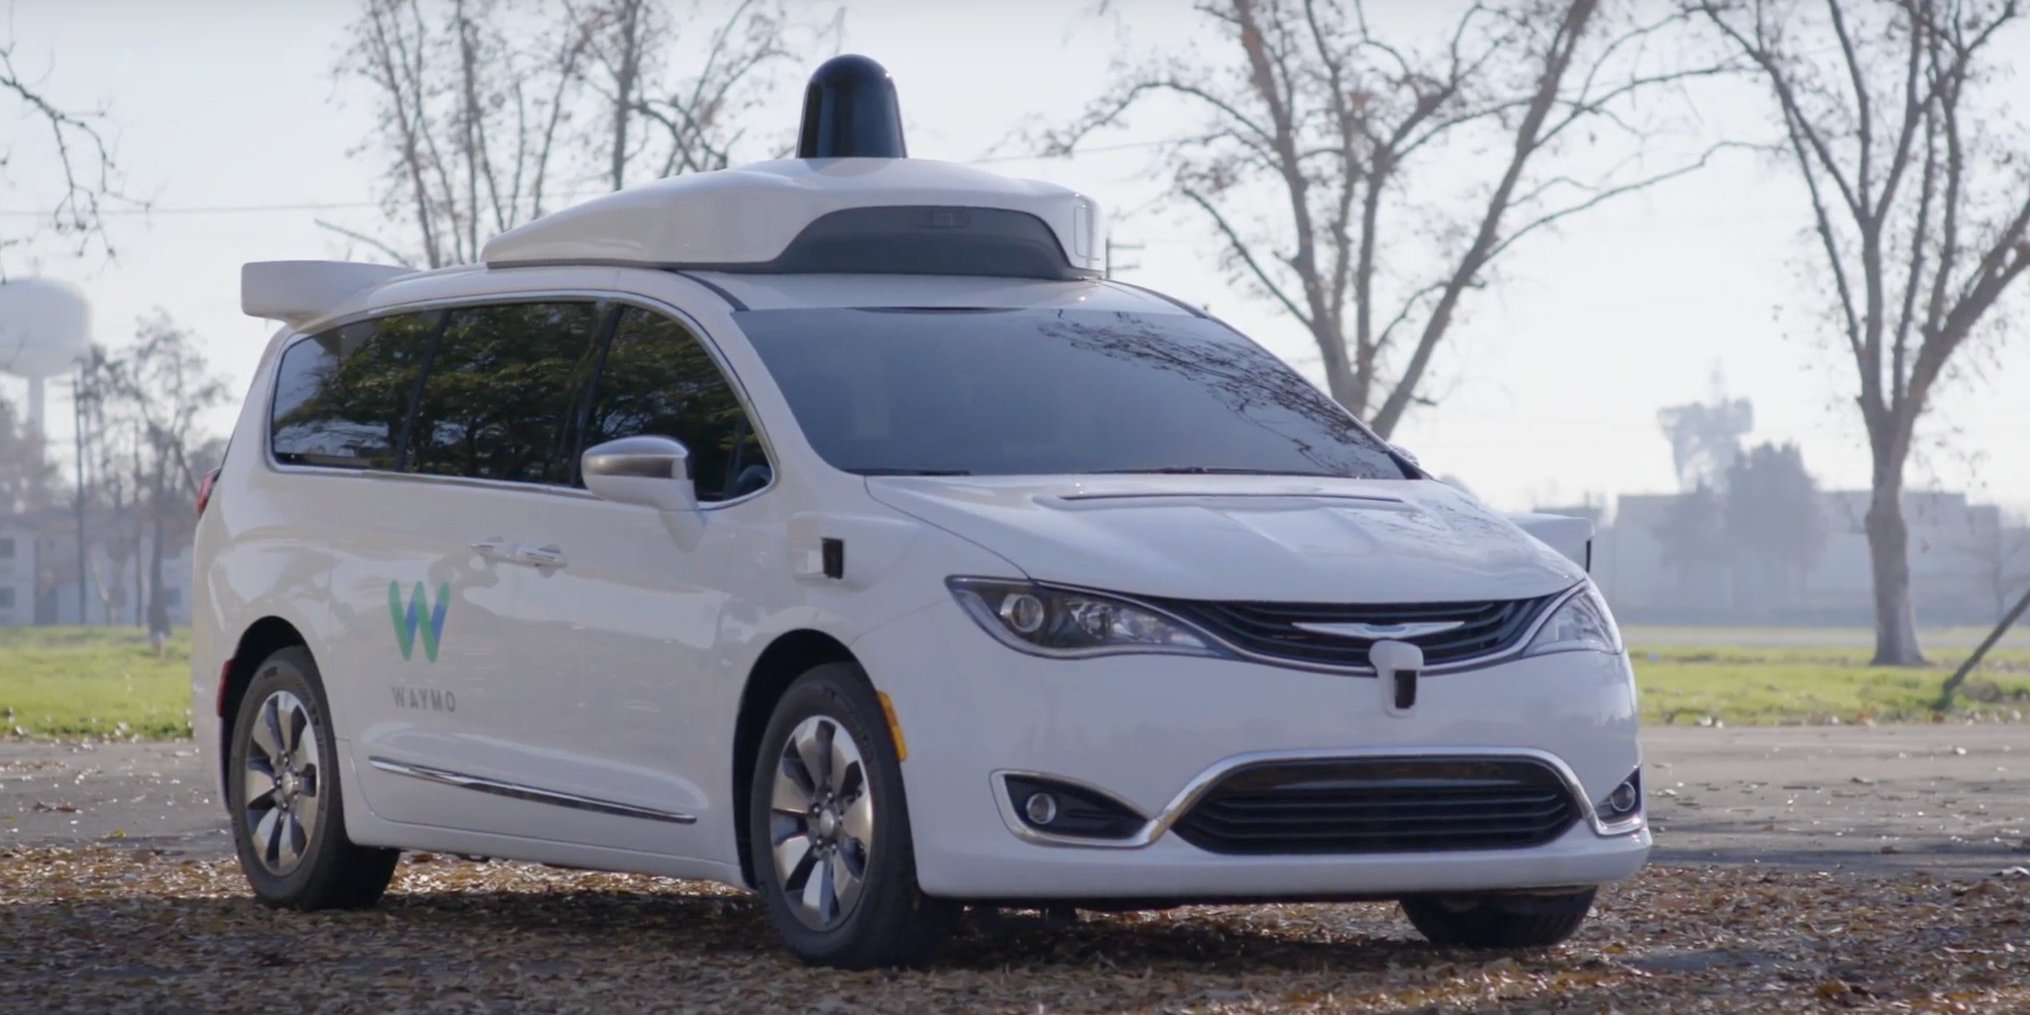 Waymo accident could have been prevented if human didn't bypass self-driving tech